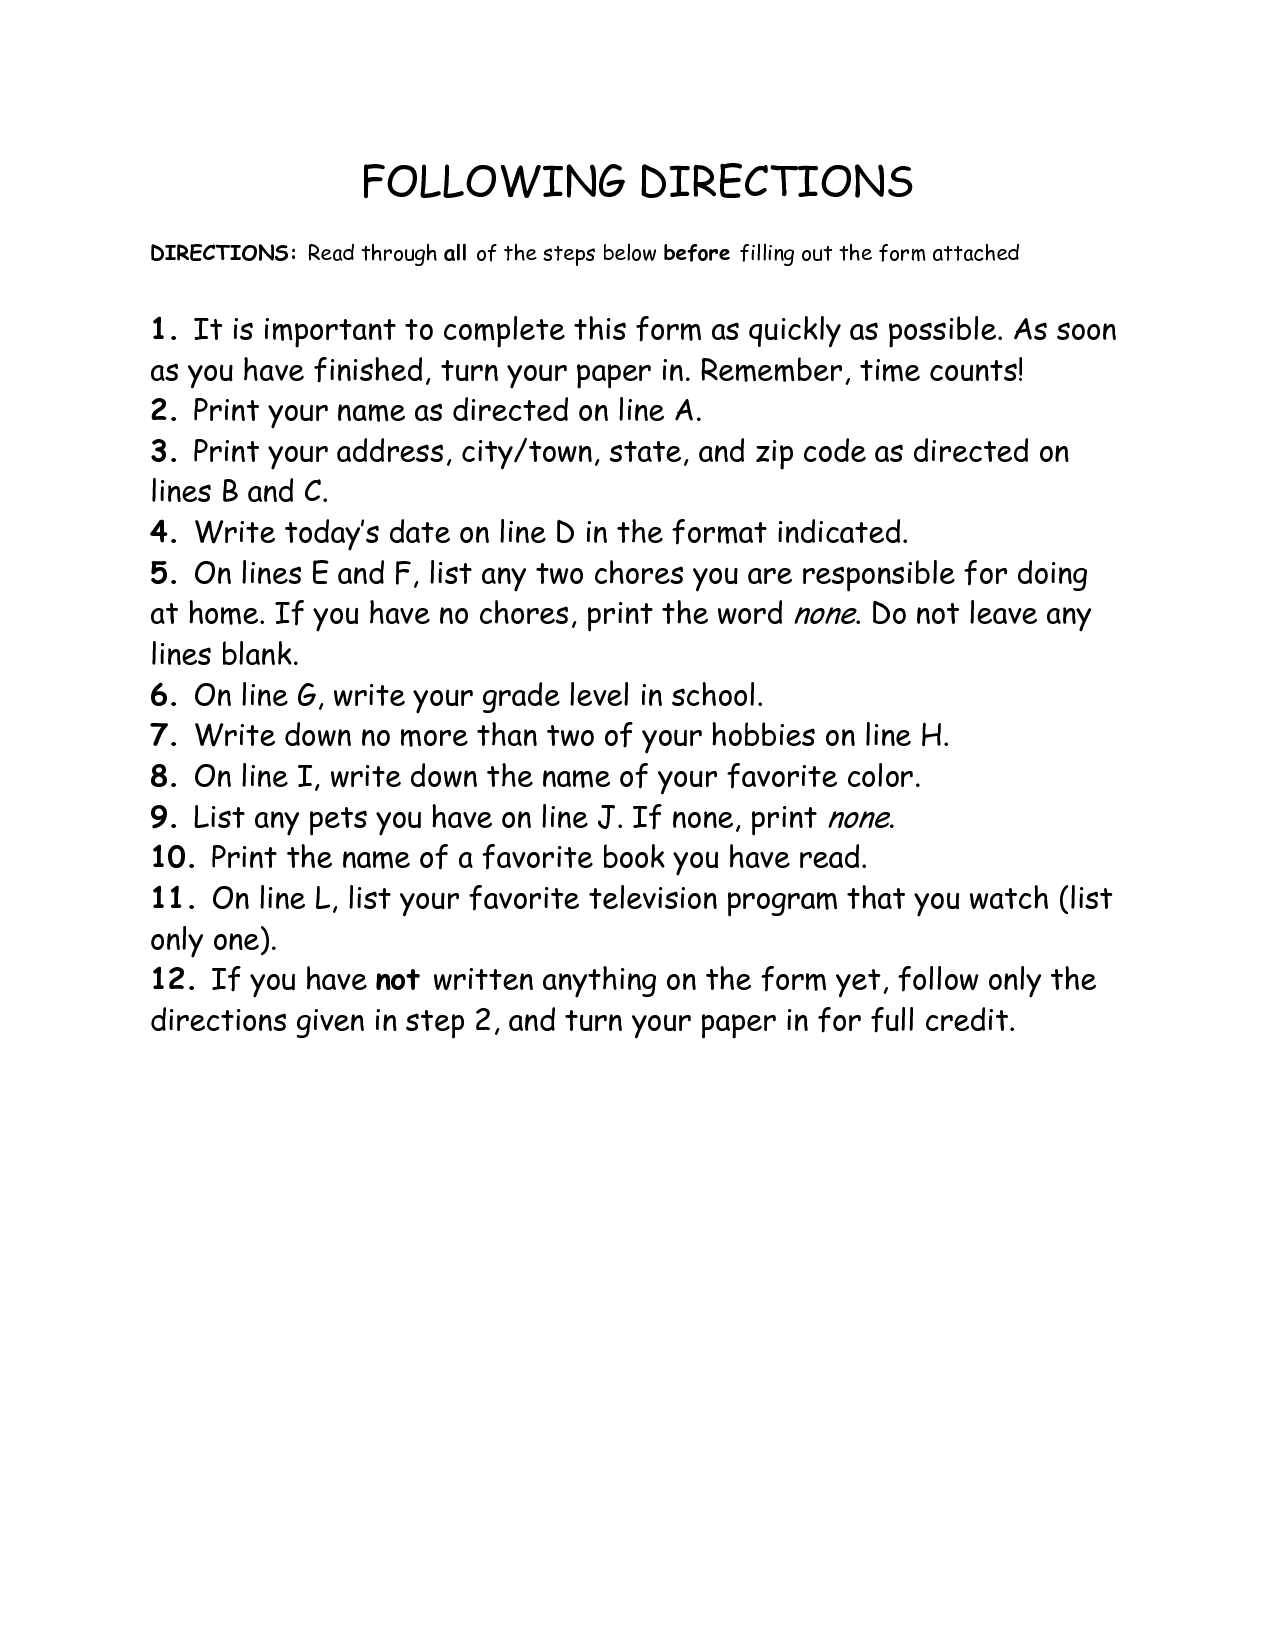 Following Directions Worksheets For Highschool Students